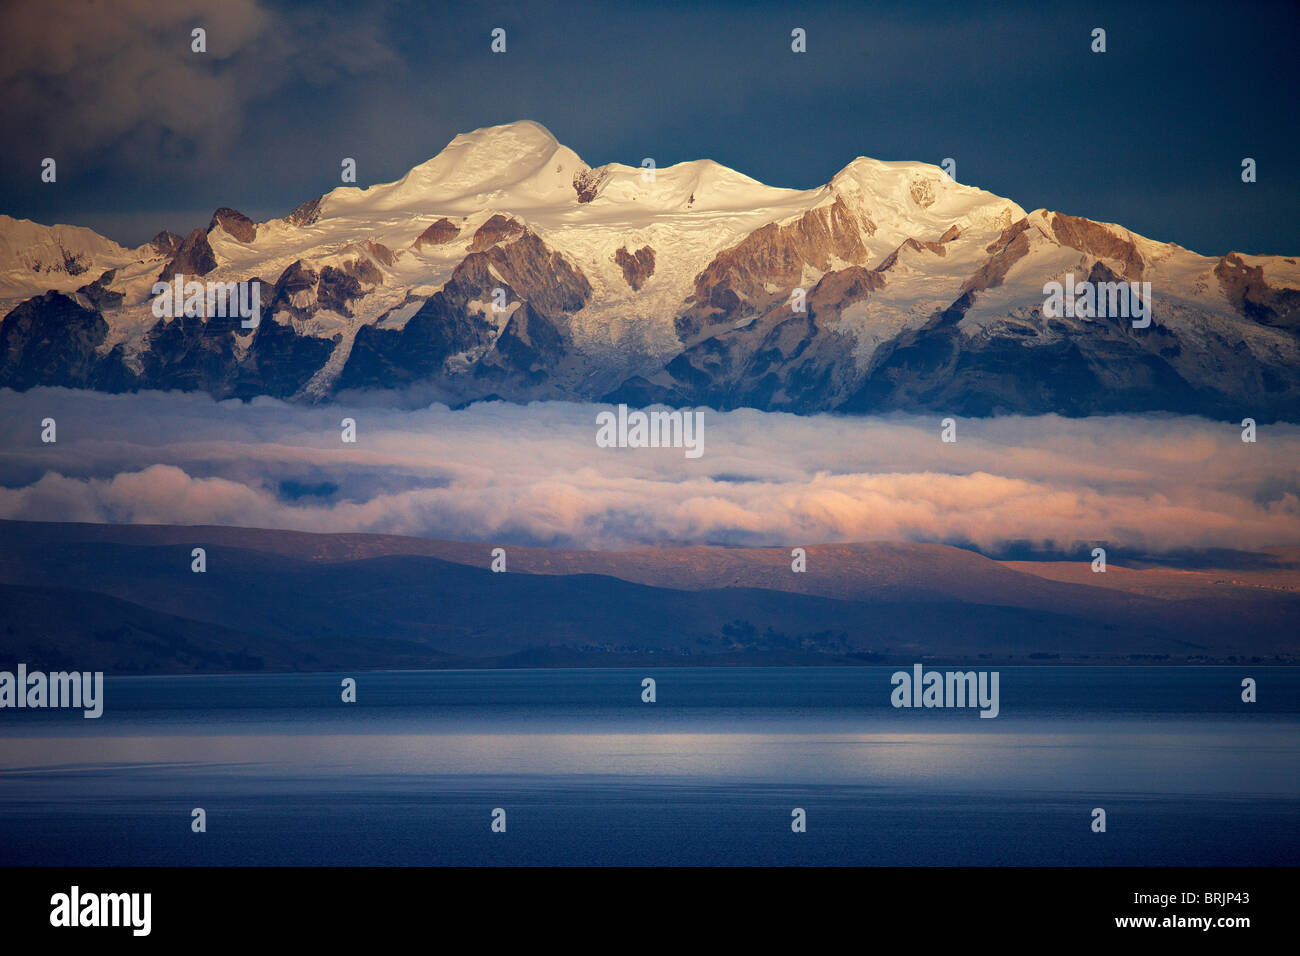 the Andes from Lake Titicaca, Bolivia - Stock Image